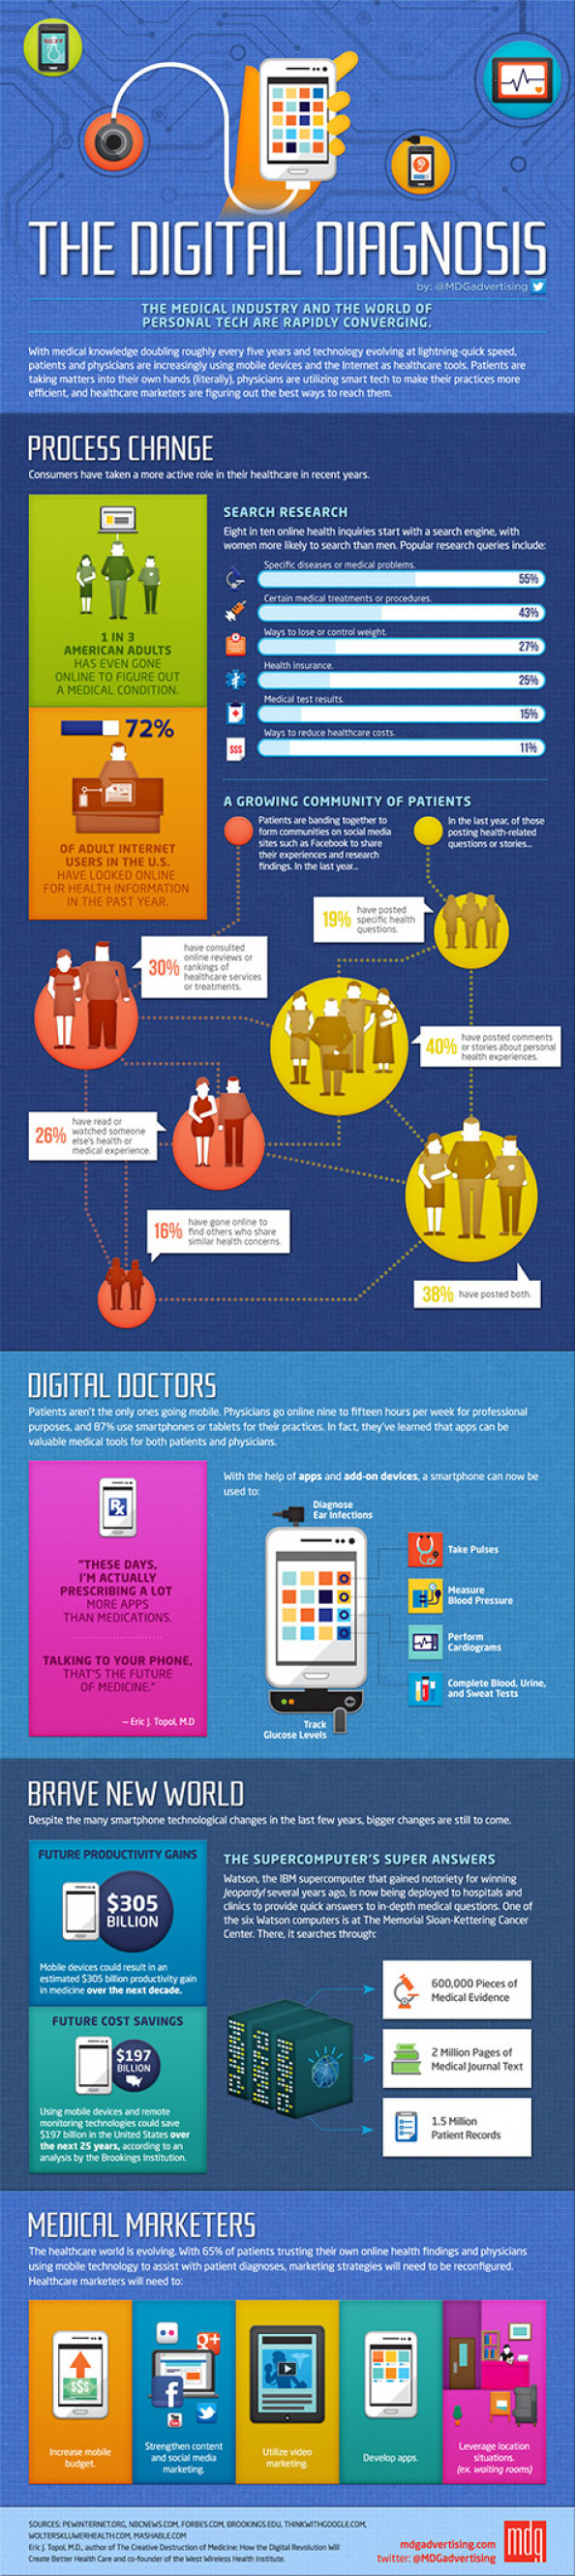 The Digital Diagnosis Infographic